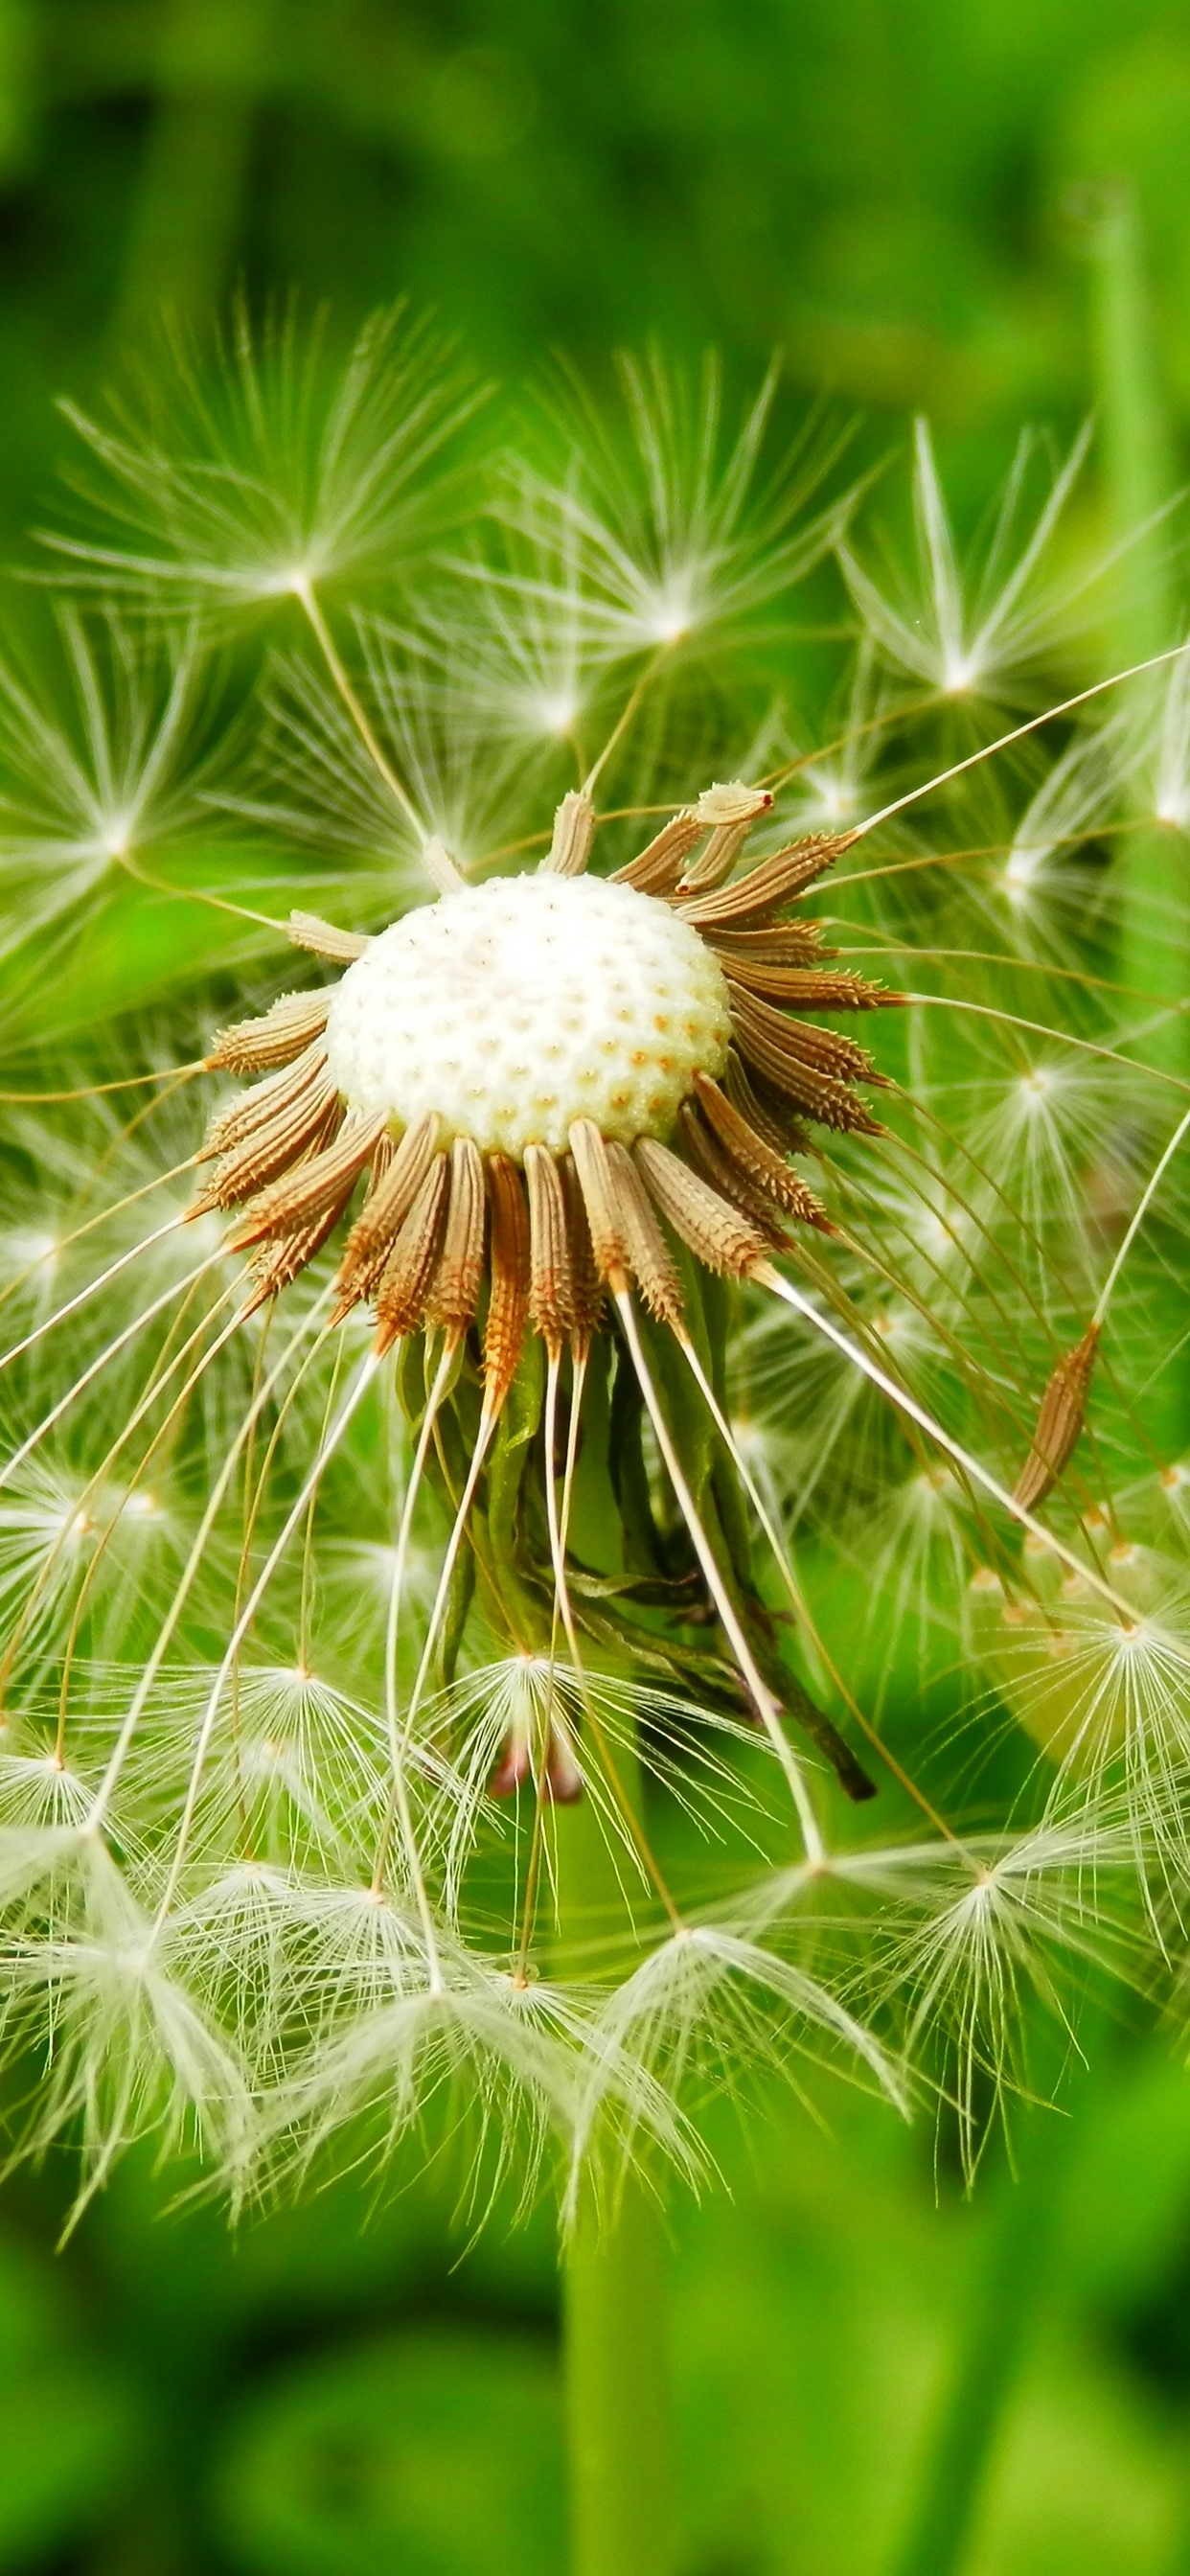 Dandelion Macro Photography Fluff Green Background 1242x2688 Iphone 11 Pro Xs Max Wallpaper Background Picture Image